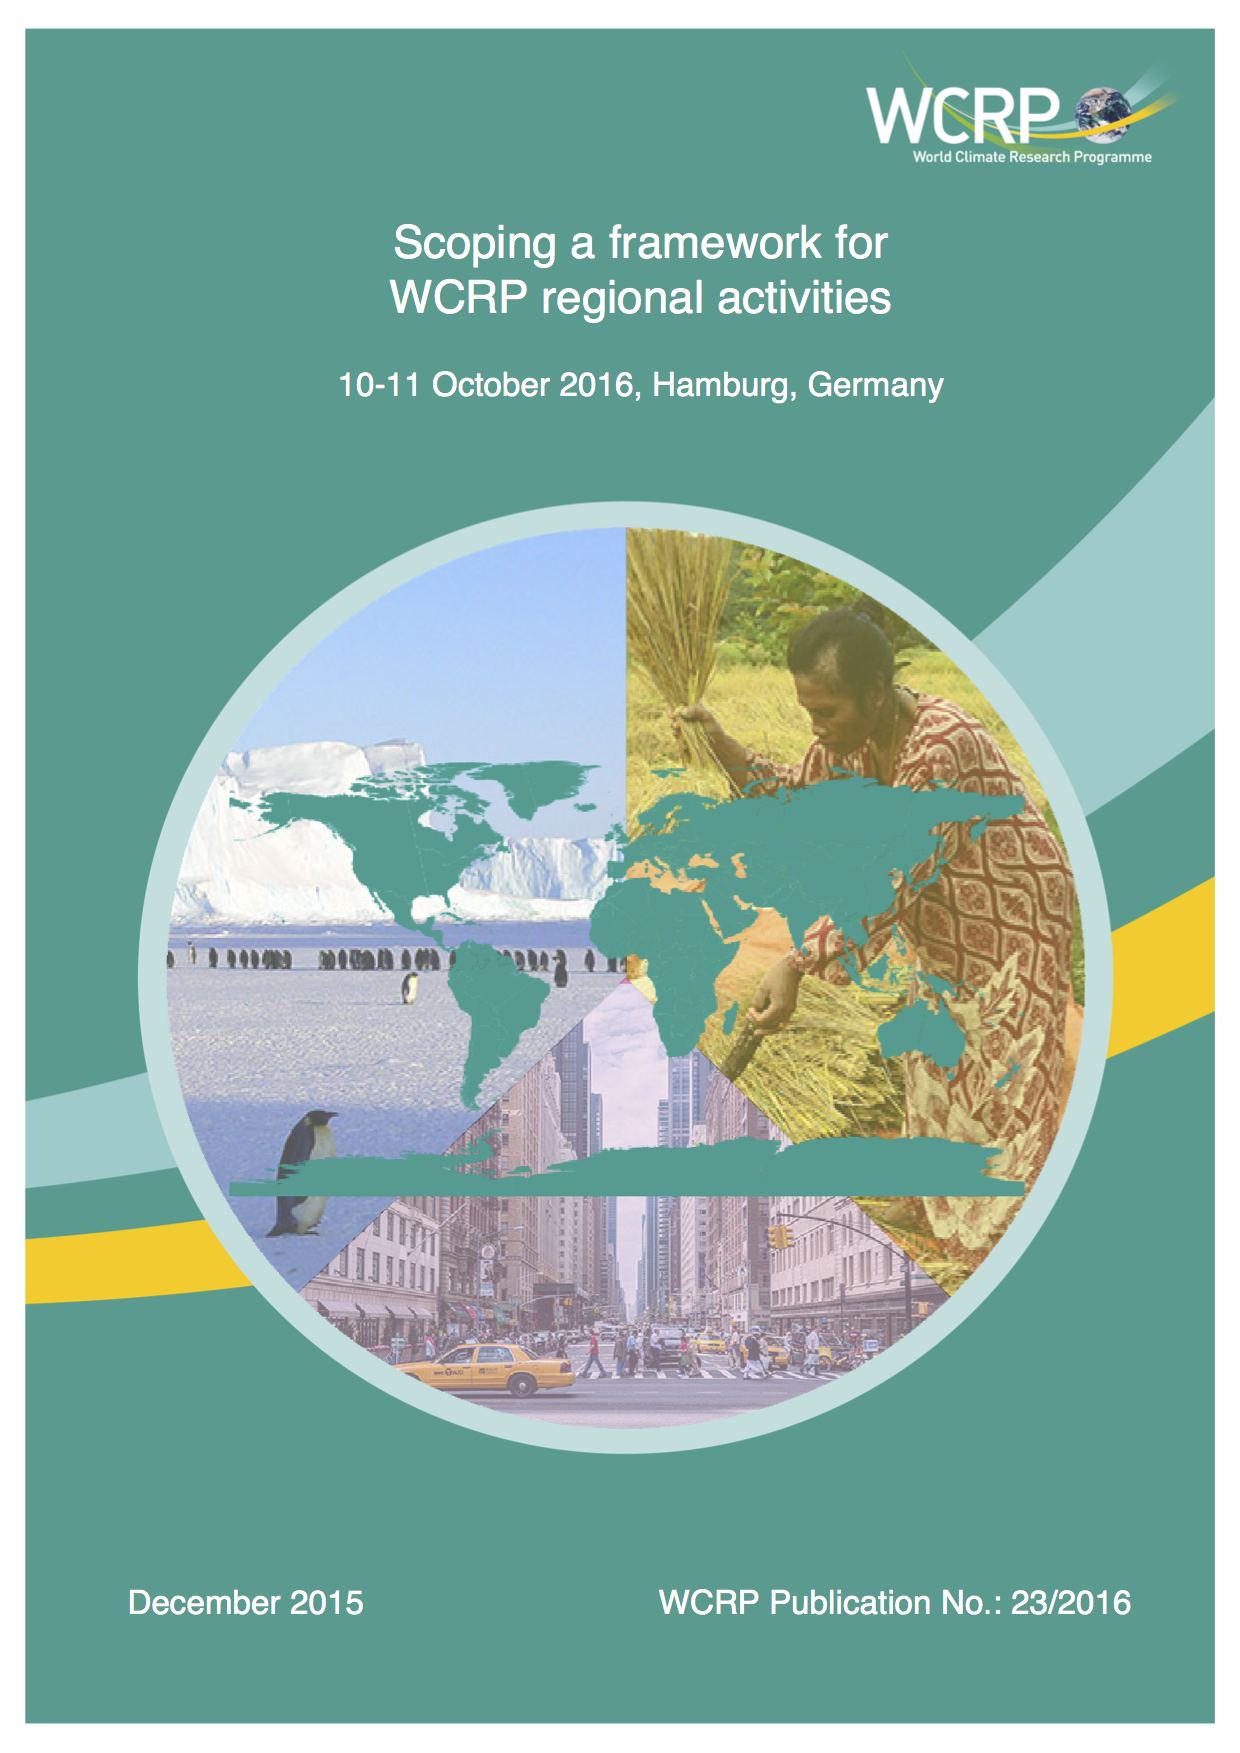 Scoping a Framework for WCRP Regional Activities